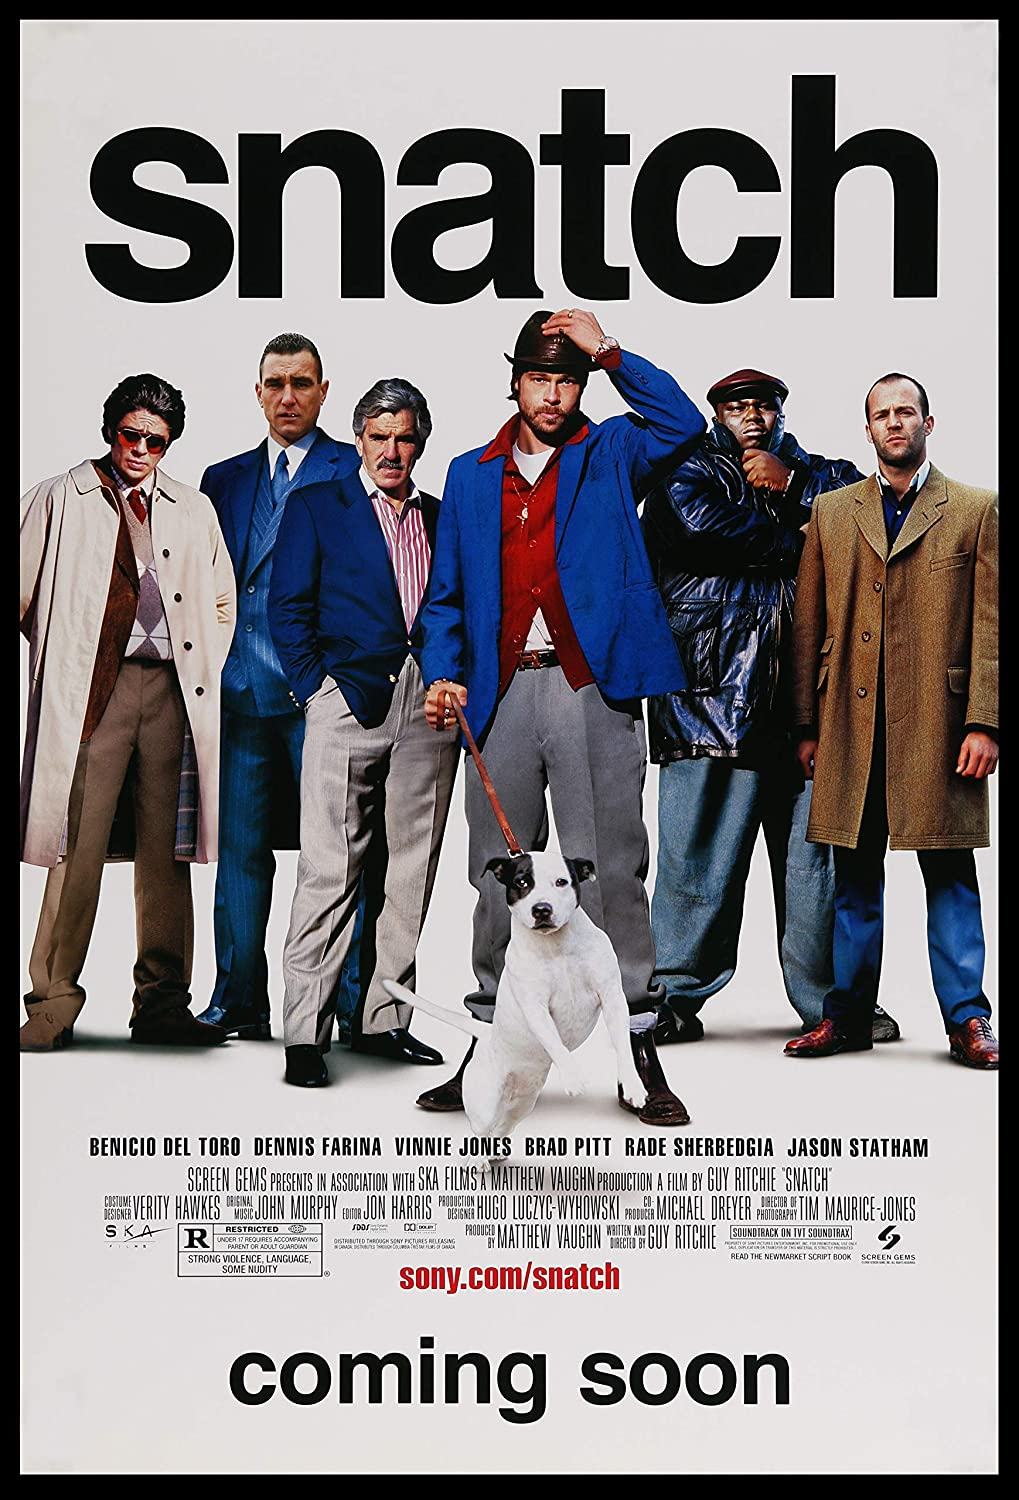 Snatch classic Vintage A3 movie poster Art print: Amazon.co.uk: Welcome